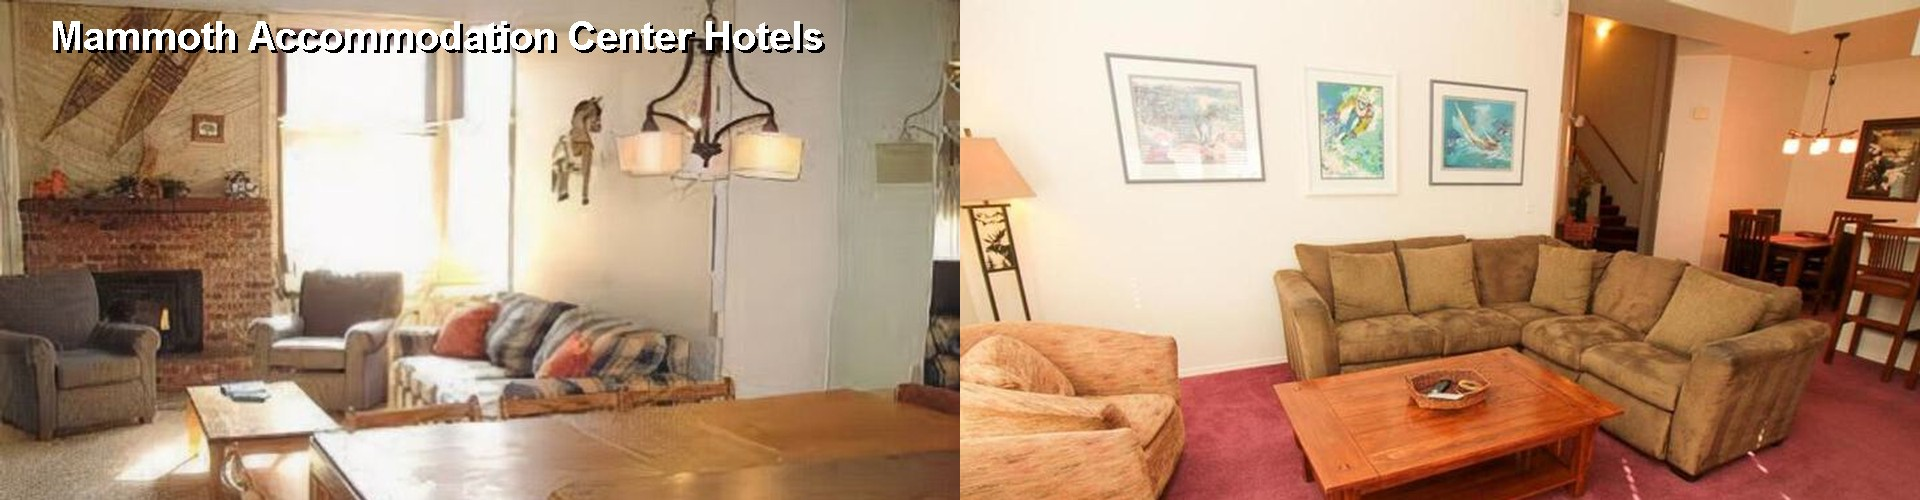 5 Best Hotels near Mammoth Accommodation Center